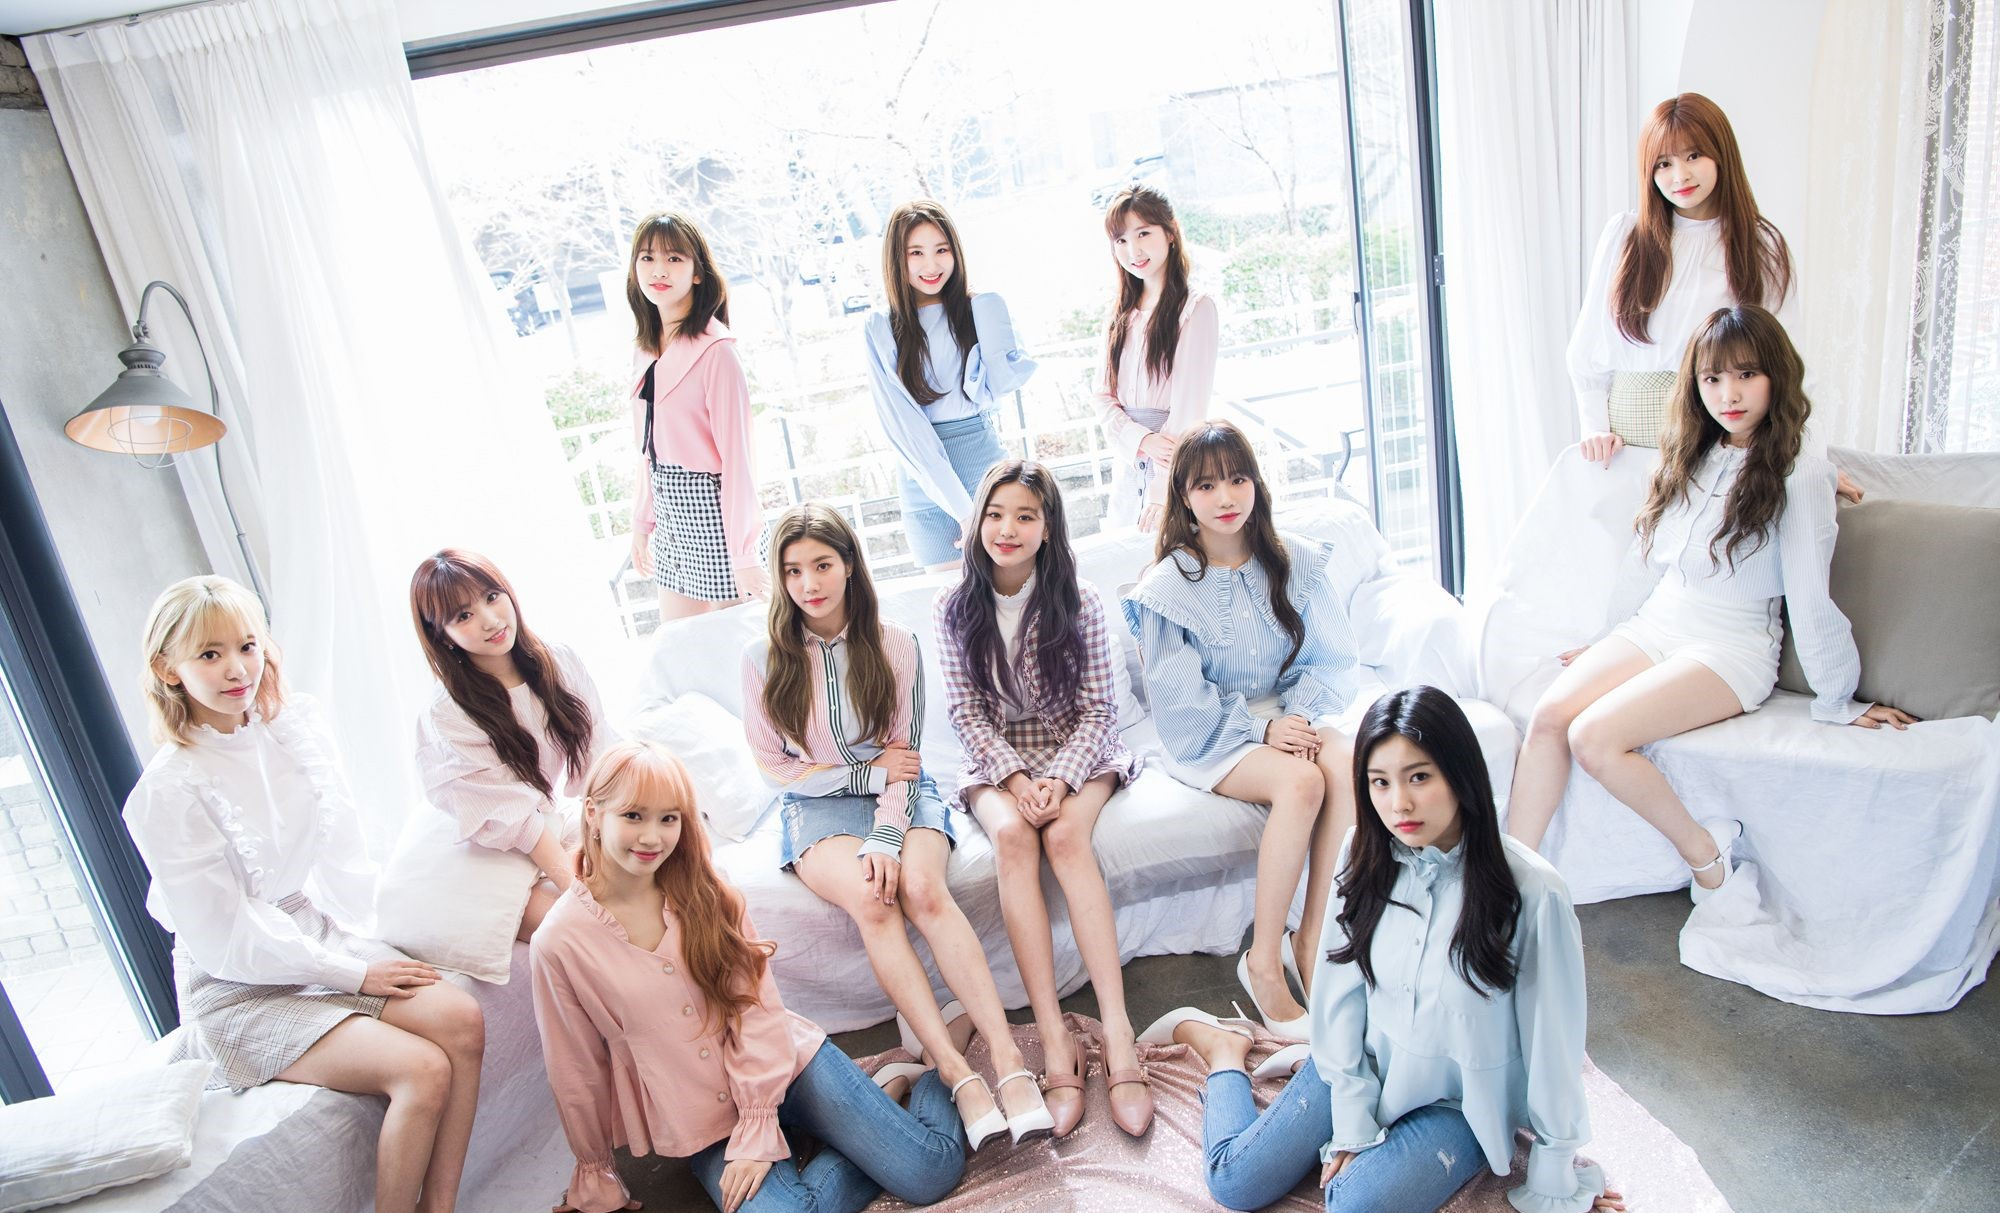 Which IZ*ONE member is your ideal type?